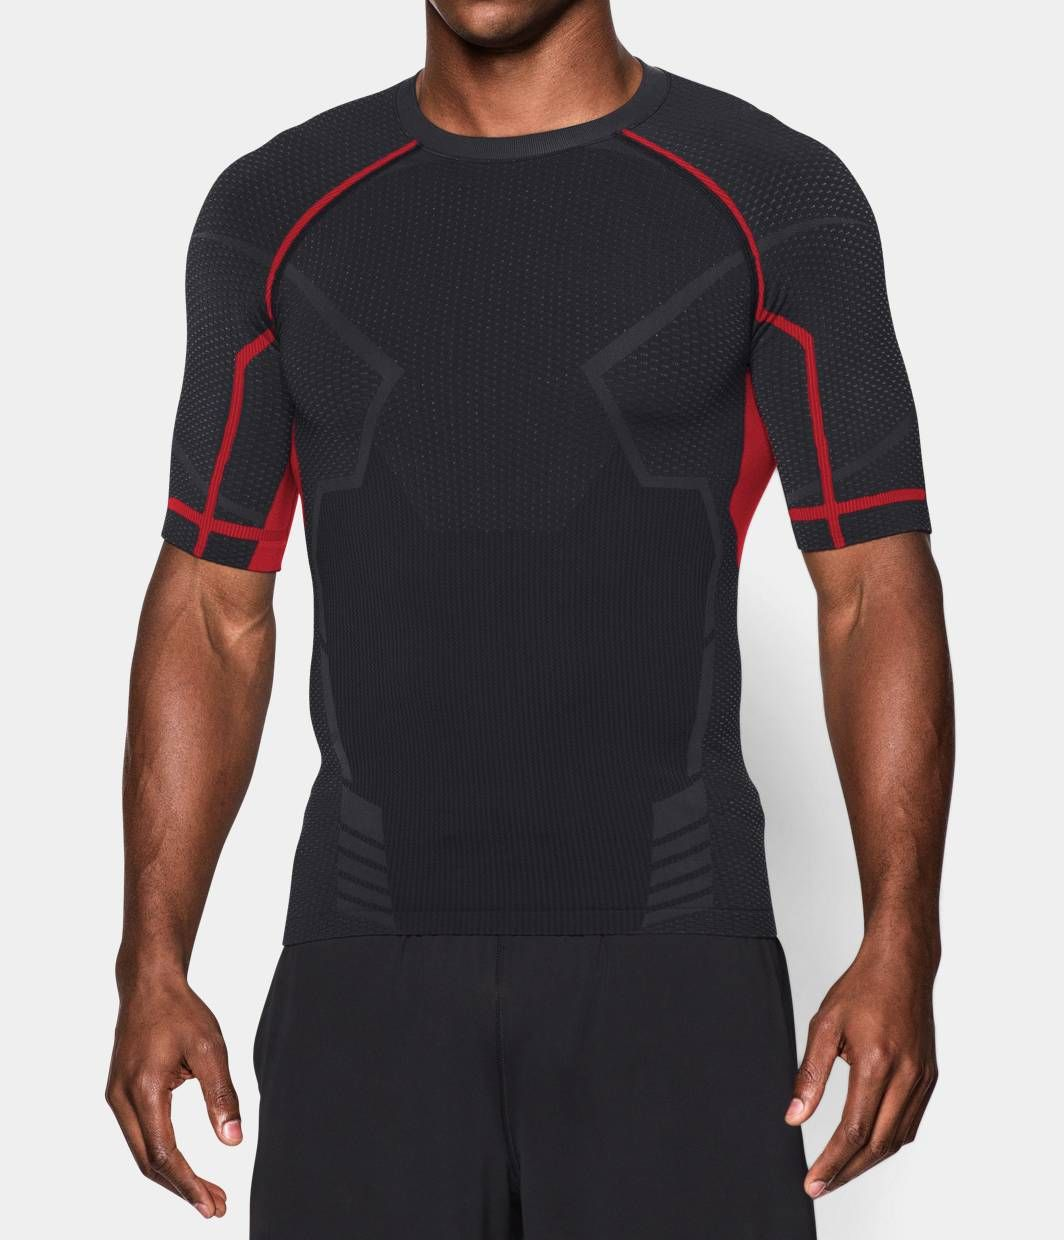 Mens Compression Sports Wear Fitness Gym Skins Base Layer Long Sleeve Shirts US